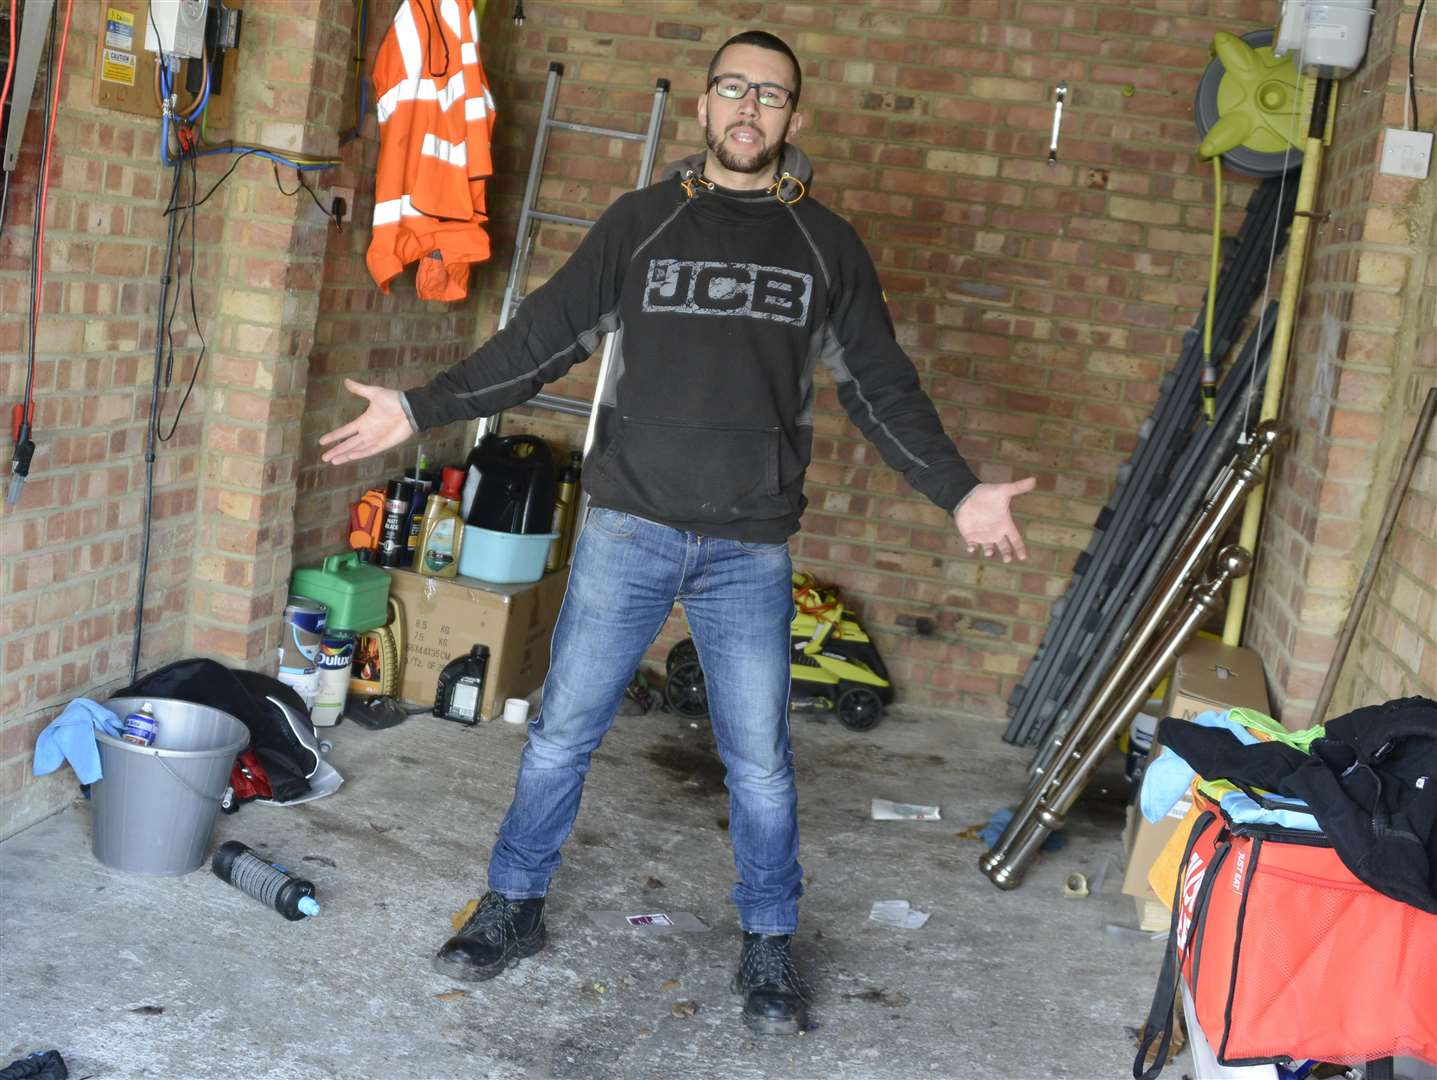 Motorcyclist Mauro Borges in the garage where the bikes were stolen